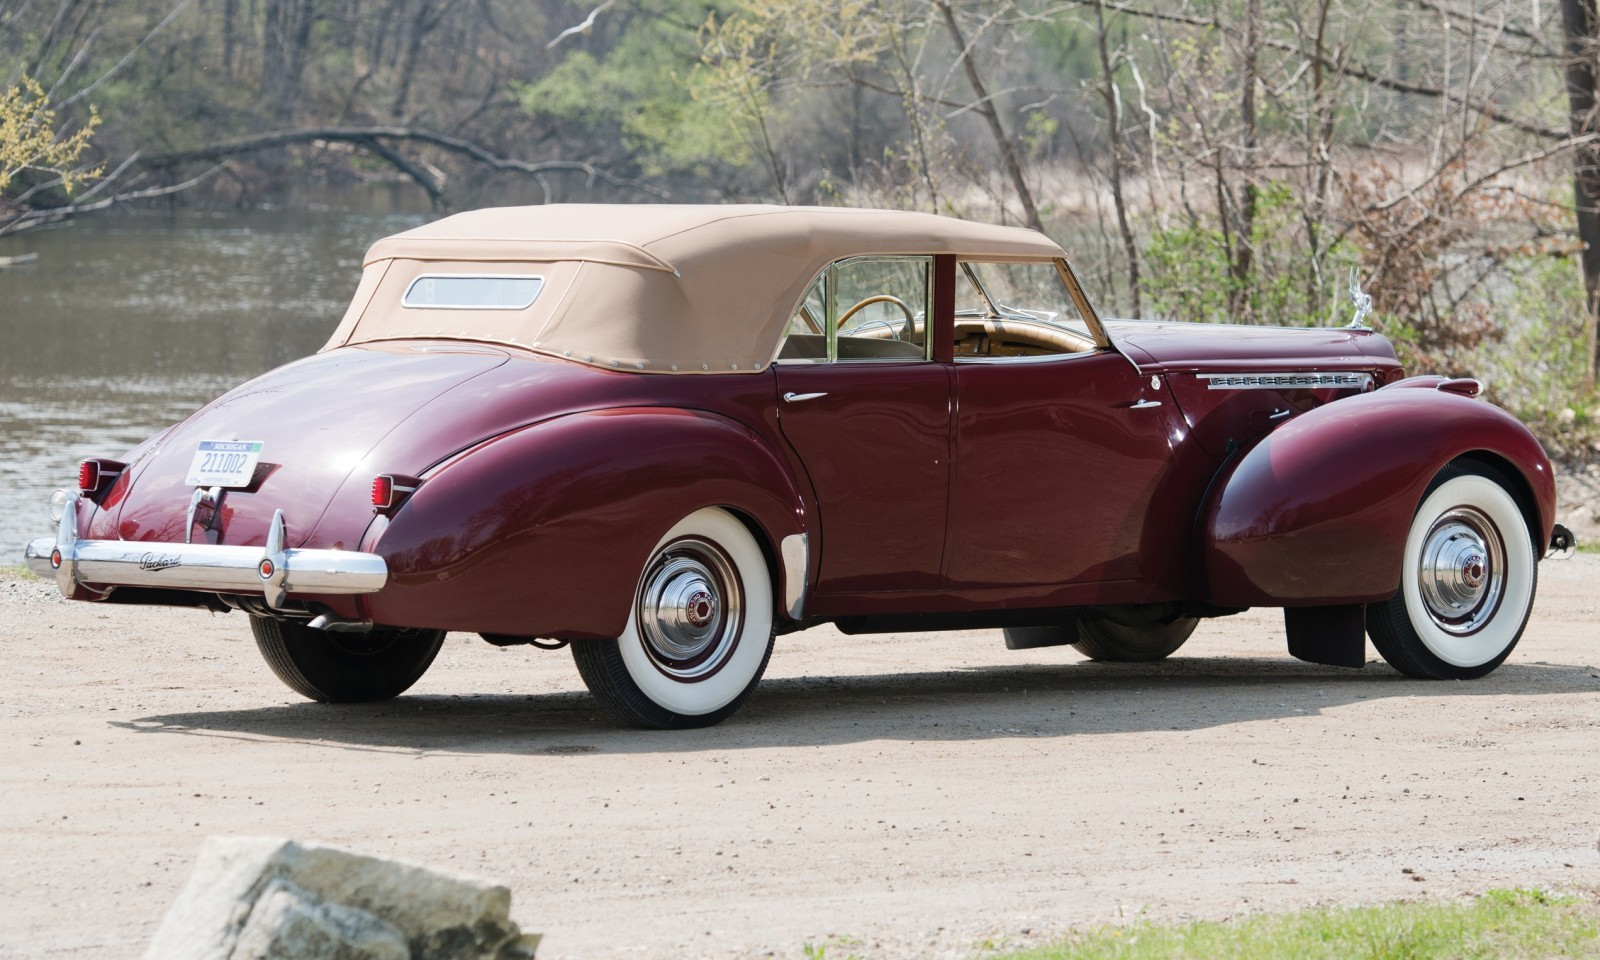 1940 Packard Custom Super Eight Convertible Sedan by Darrin 22